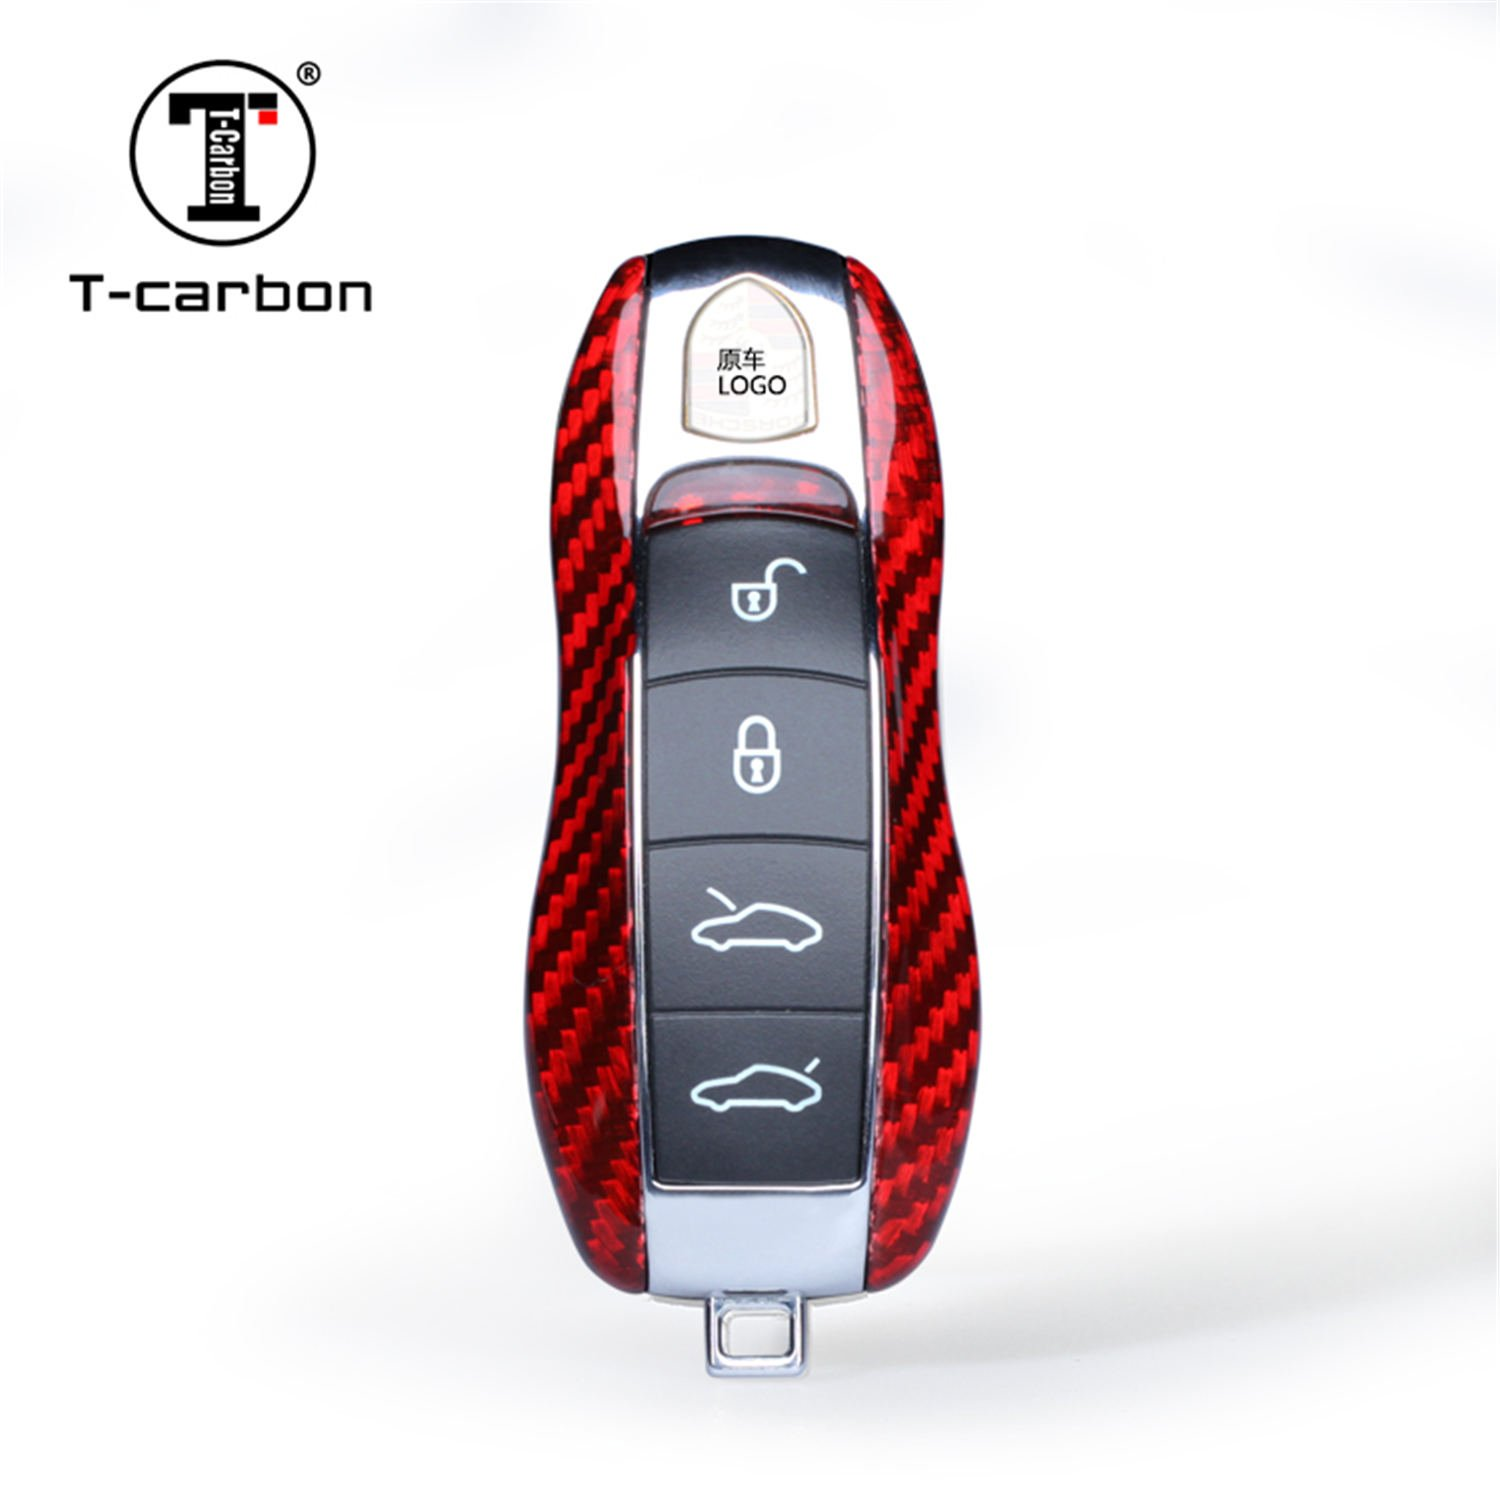 Carbon Fiber Key Fob Cover For Porsche Key Fob Remote Key, Fit Porsche 718 911 918 Panamera Macan Cayenne Boxster Cayman Car Key, Light Weight Glossy Finish Key Fob Replacement Protection Case - Red